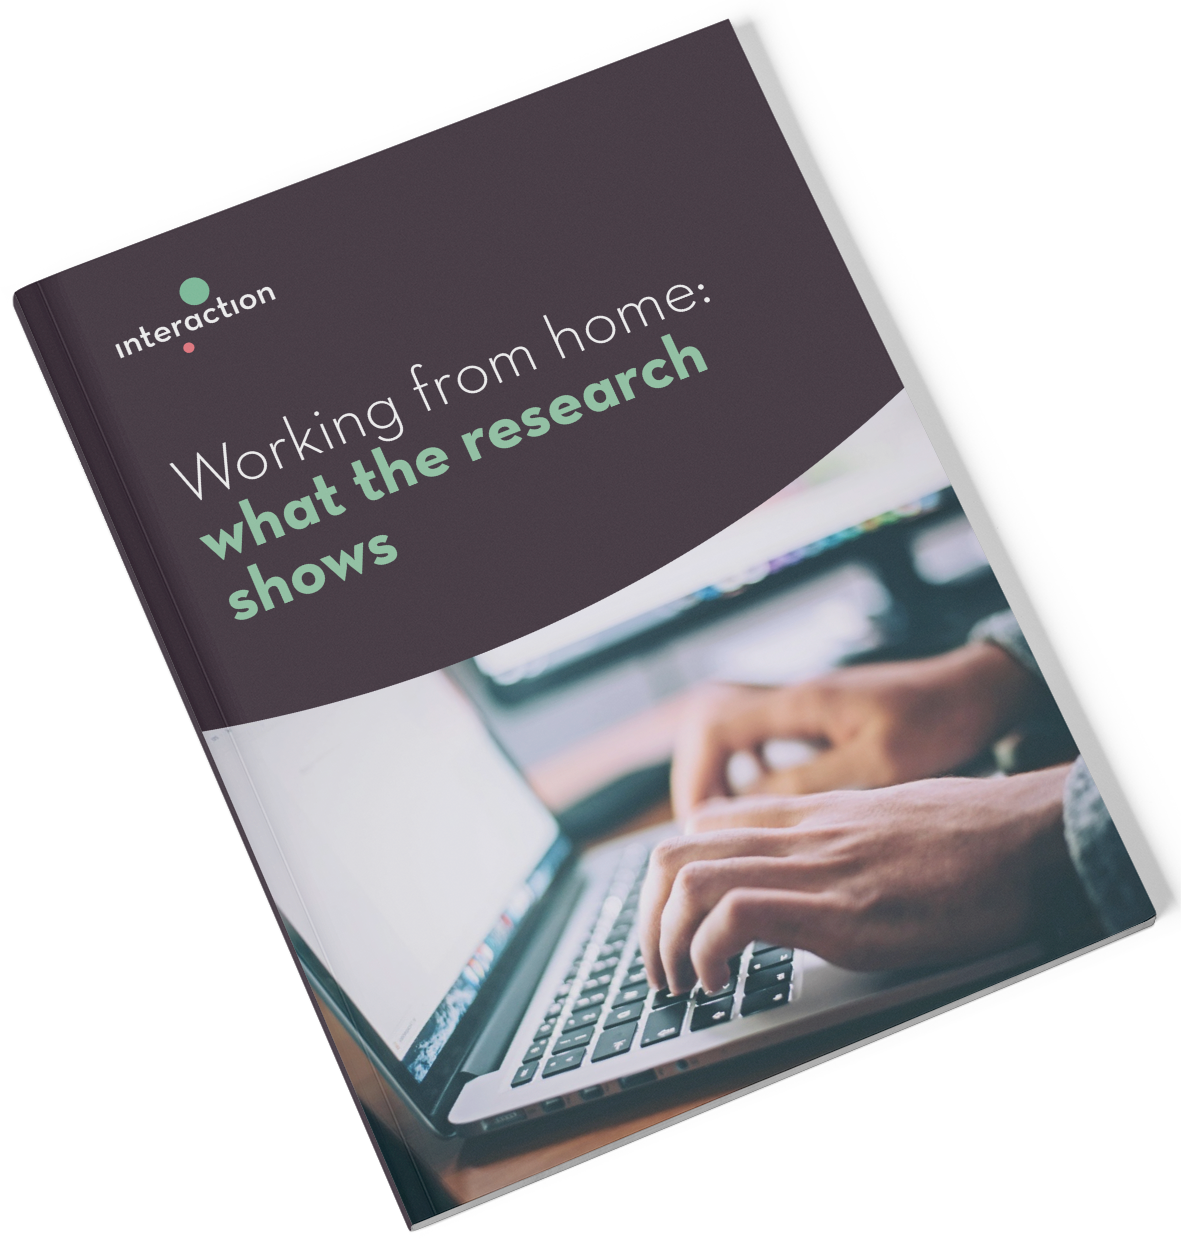 Working from home: What the research shows [PDF Download] Image